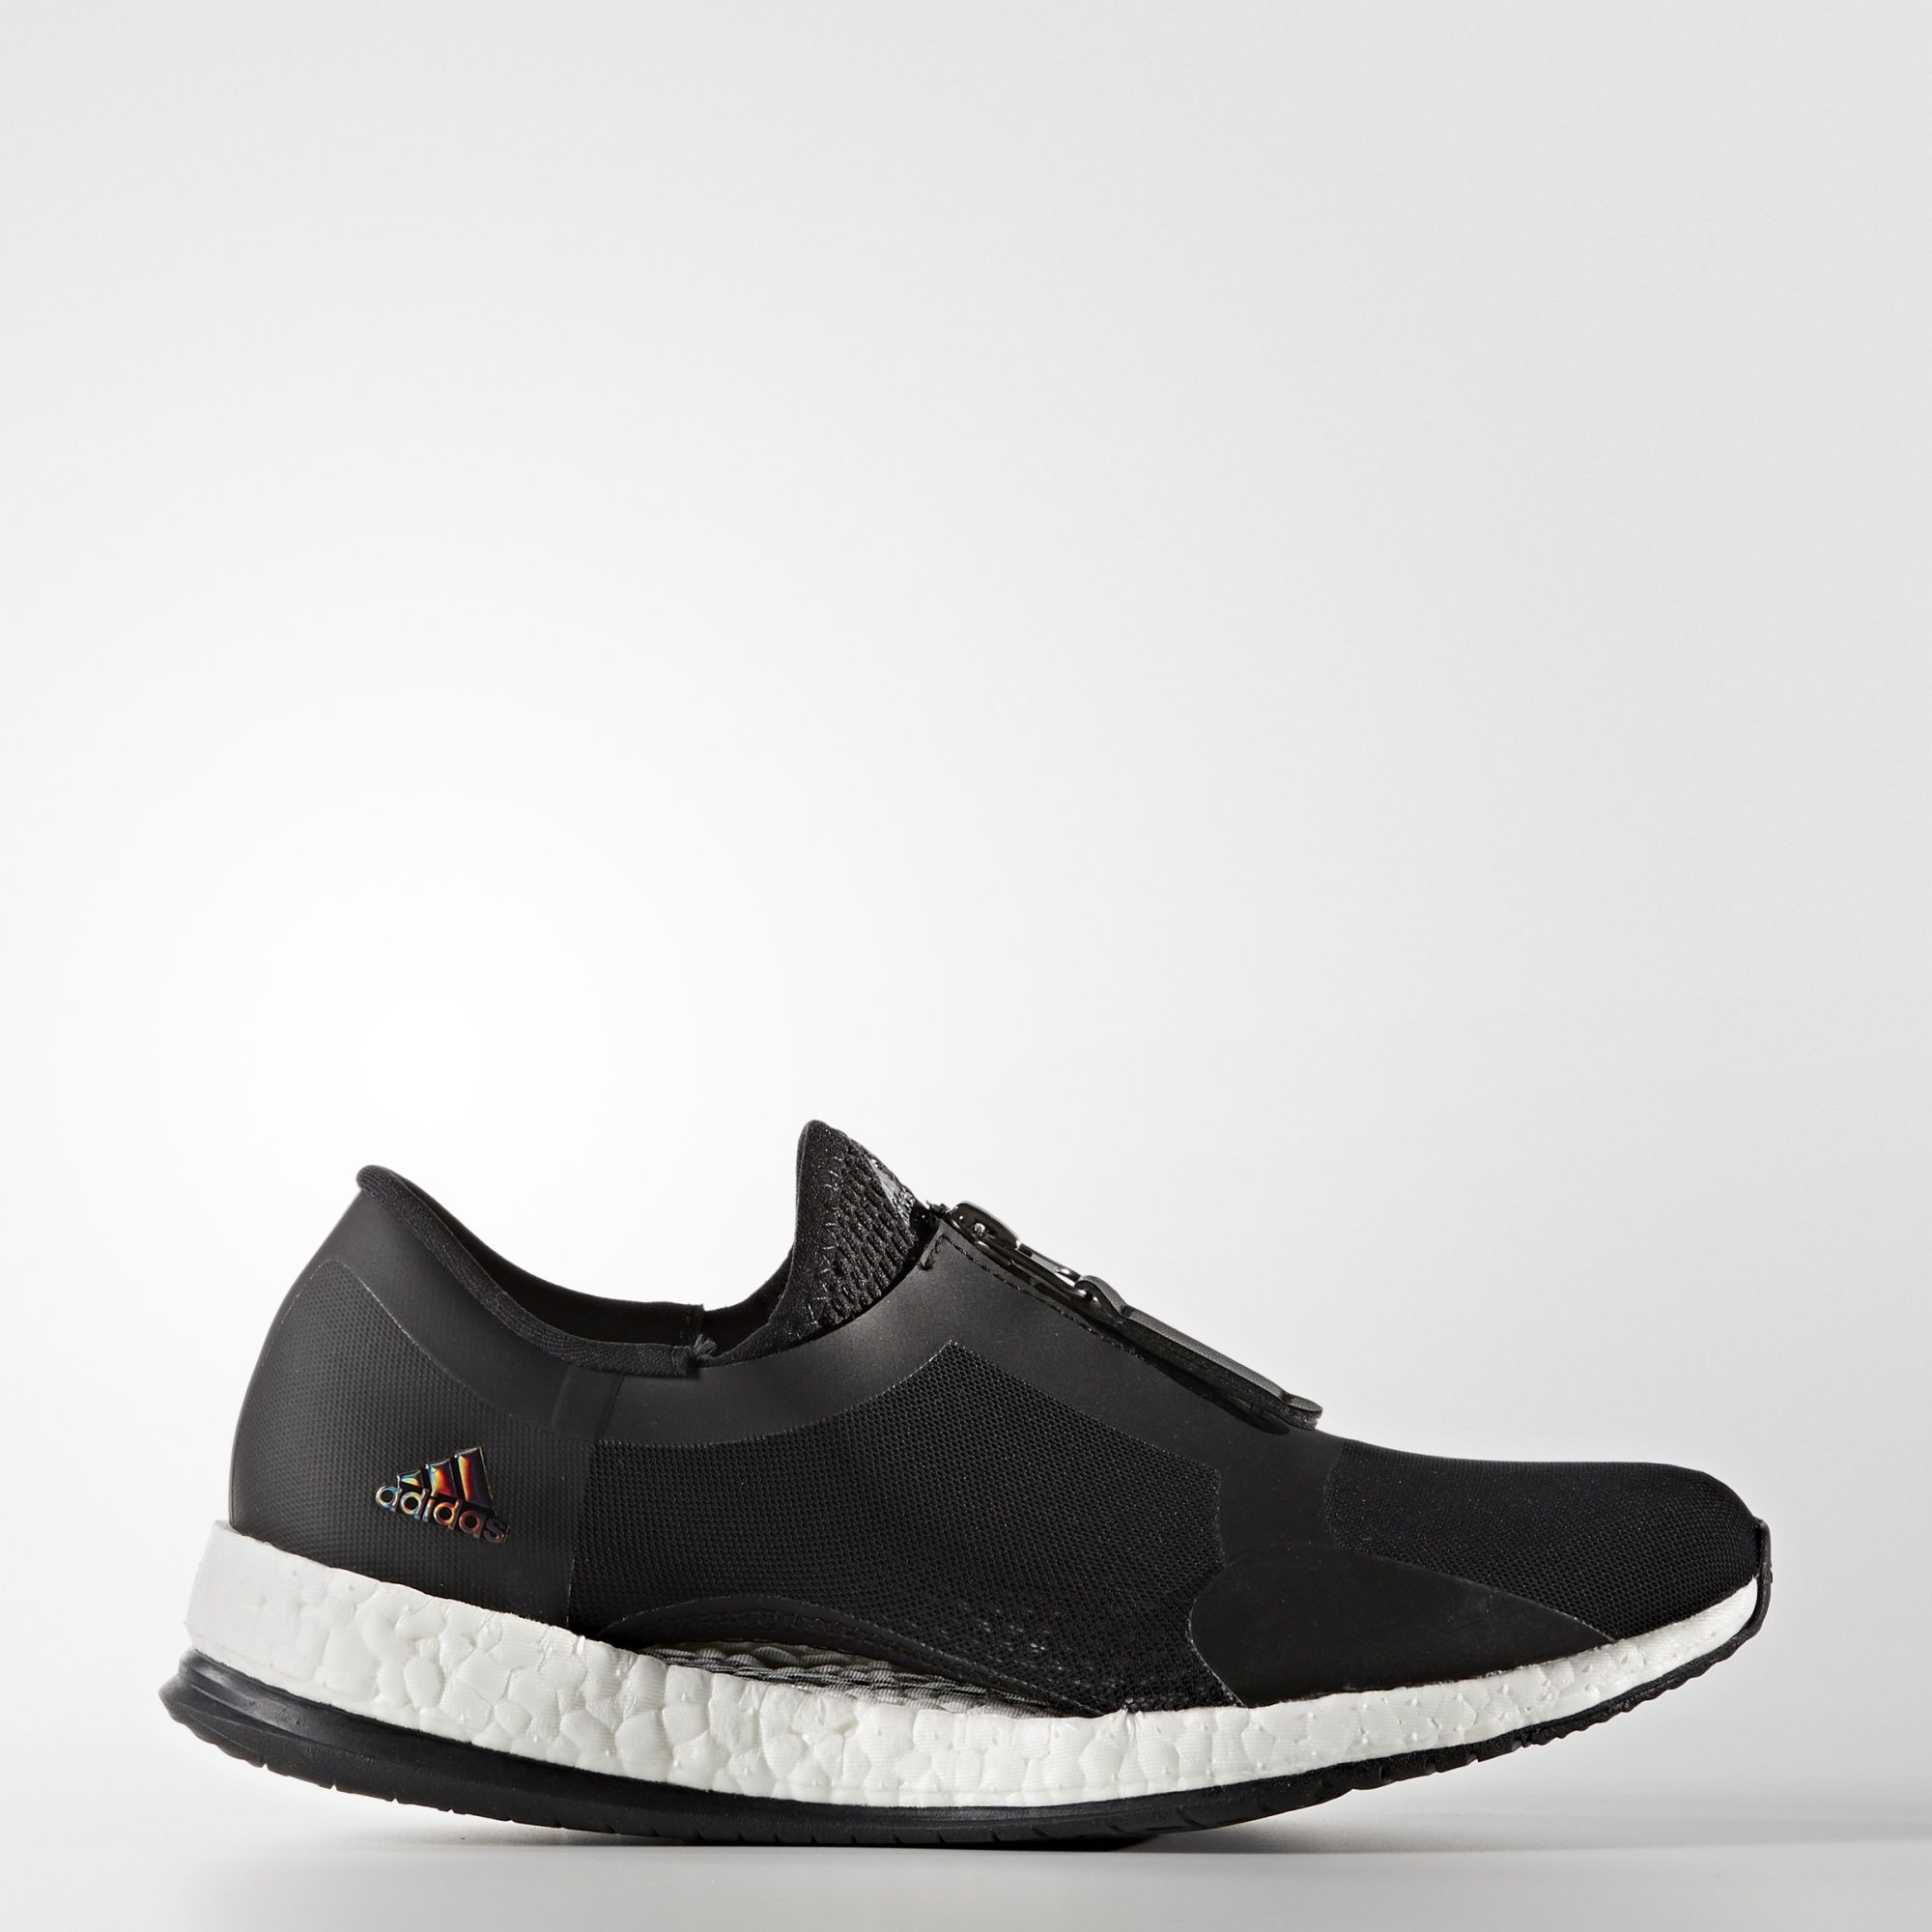 adidas Pure Boost X Trainer Zip Shoes - Black | adidas US